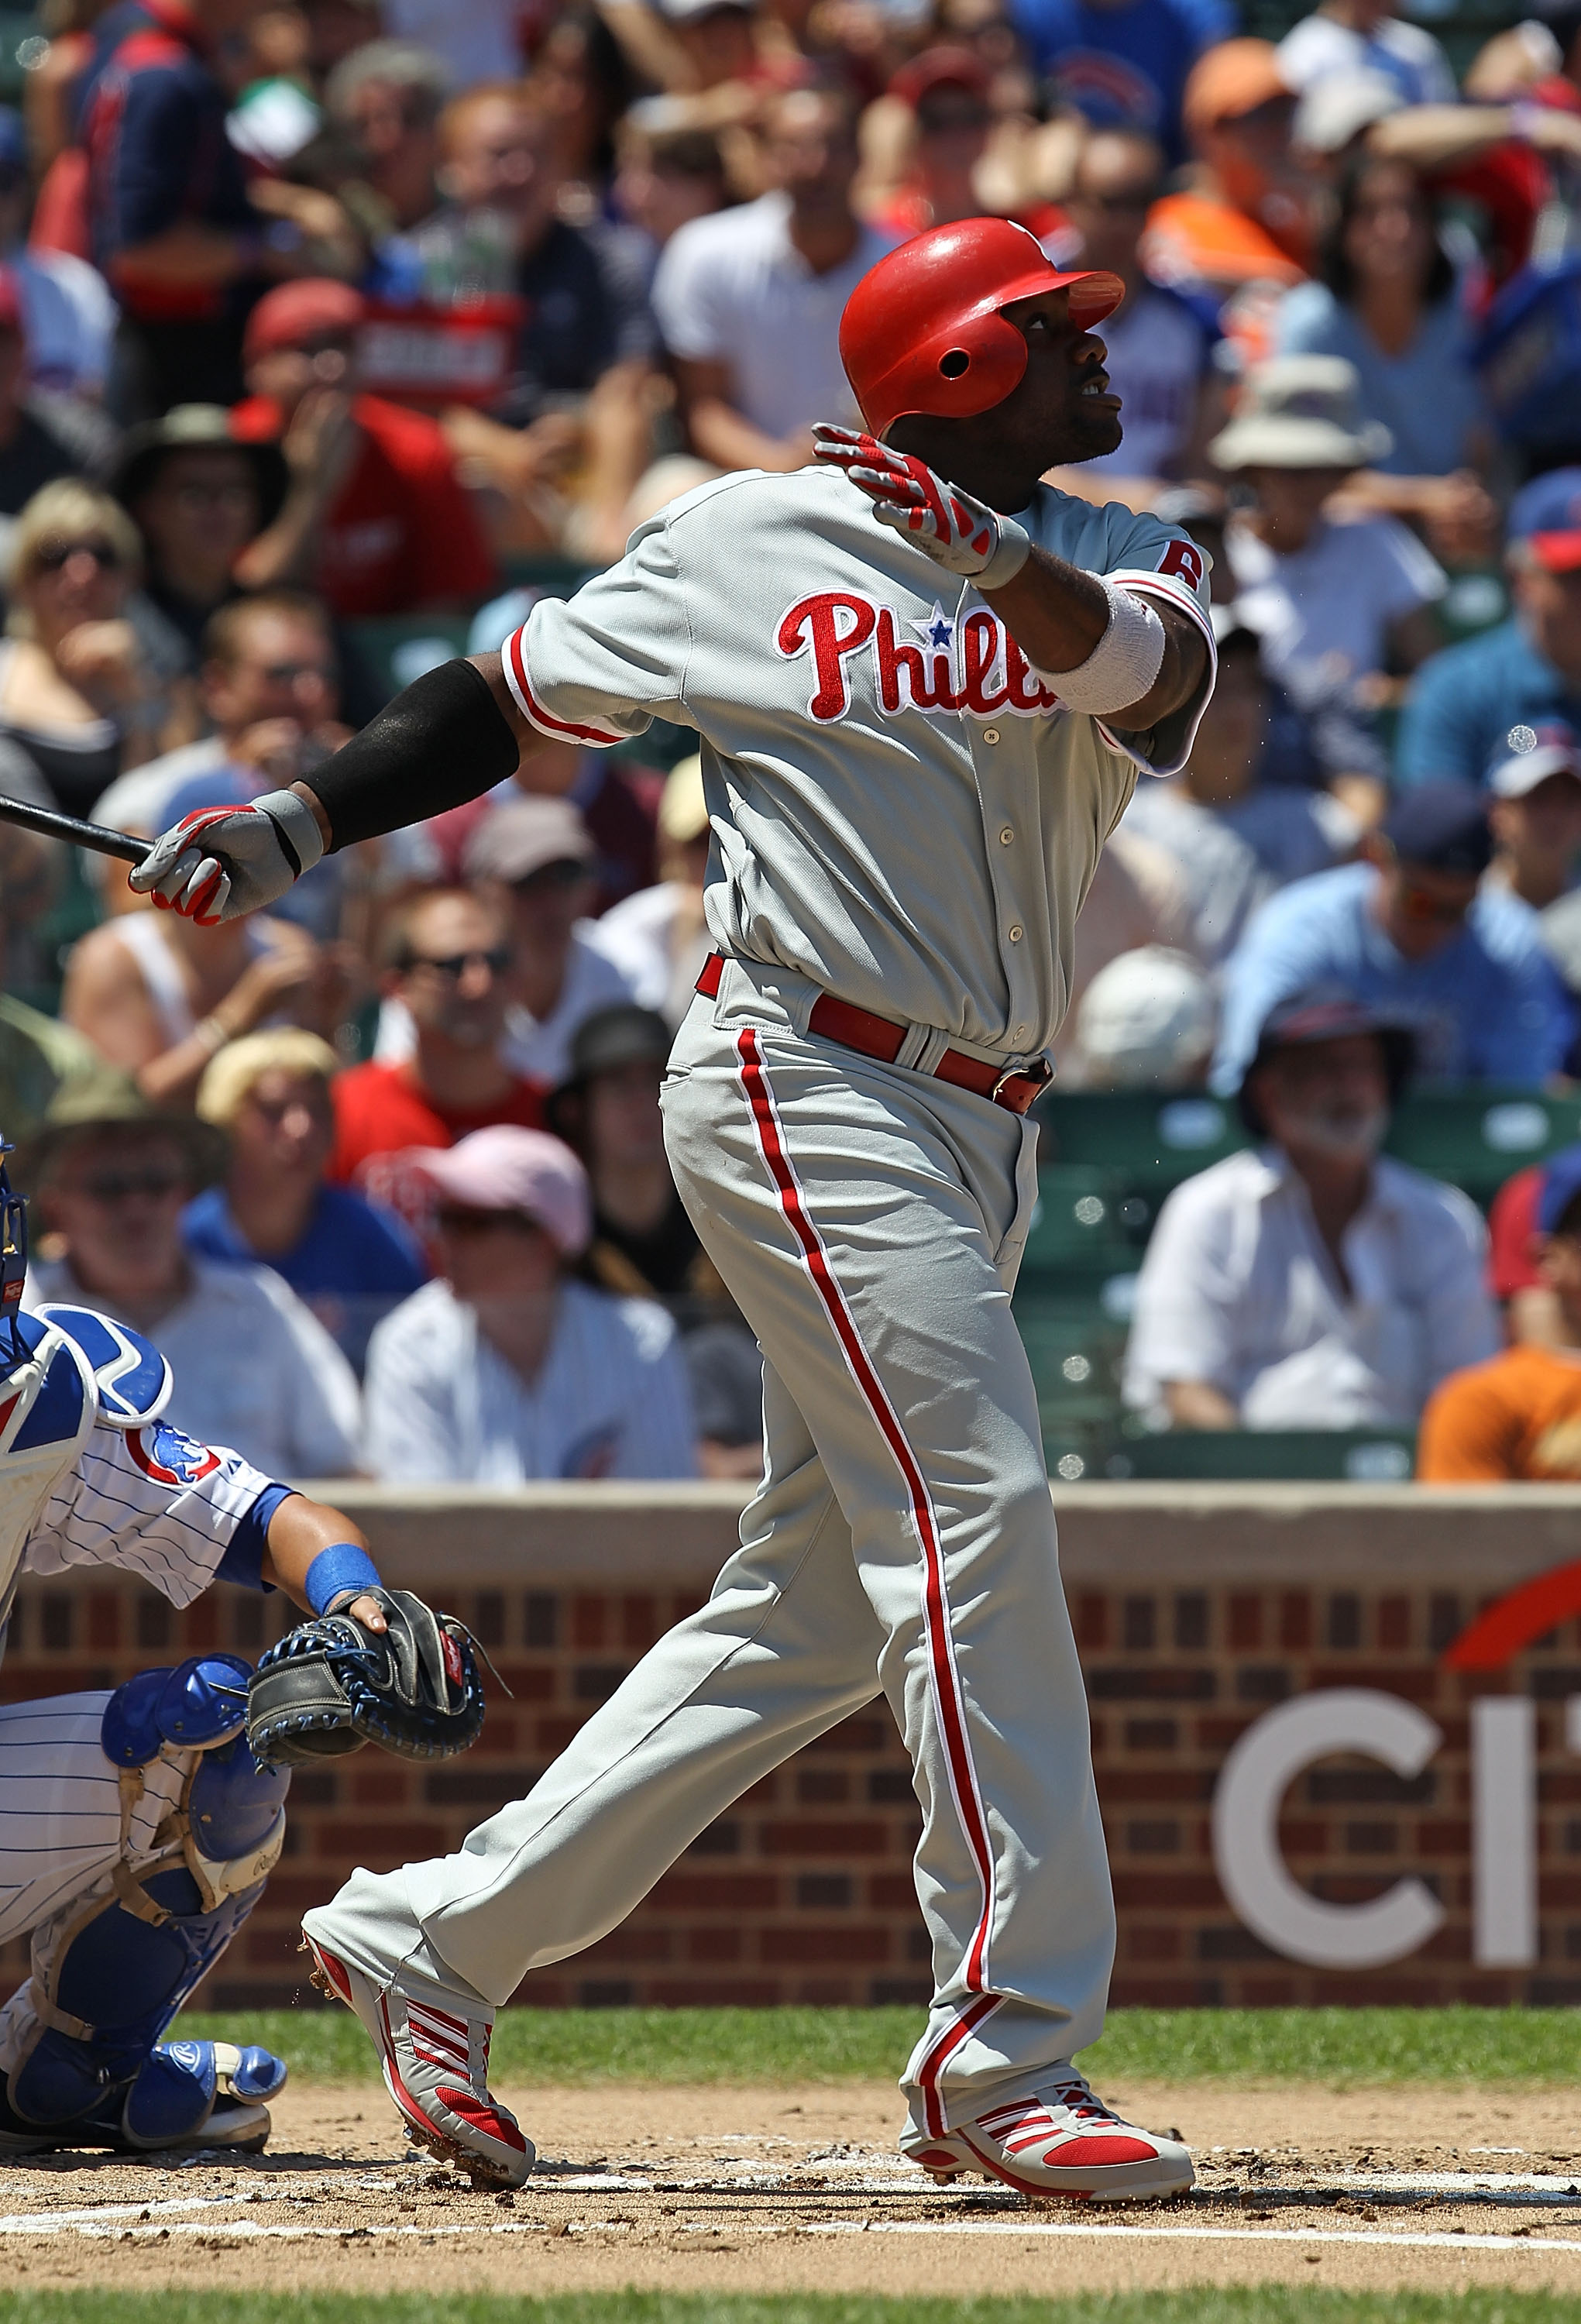 CHICAGO - JULY 16: Ryan Howard #6 of the Philadelphia Phillies watches the flight of the ball against the Chicago Cubs at Wrigley Field on July 16, 2010 in Chicago, Illinois. The Cubs defeated the Phillies 4-3. (Photo by Jonathan Daniel/Getty Images)